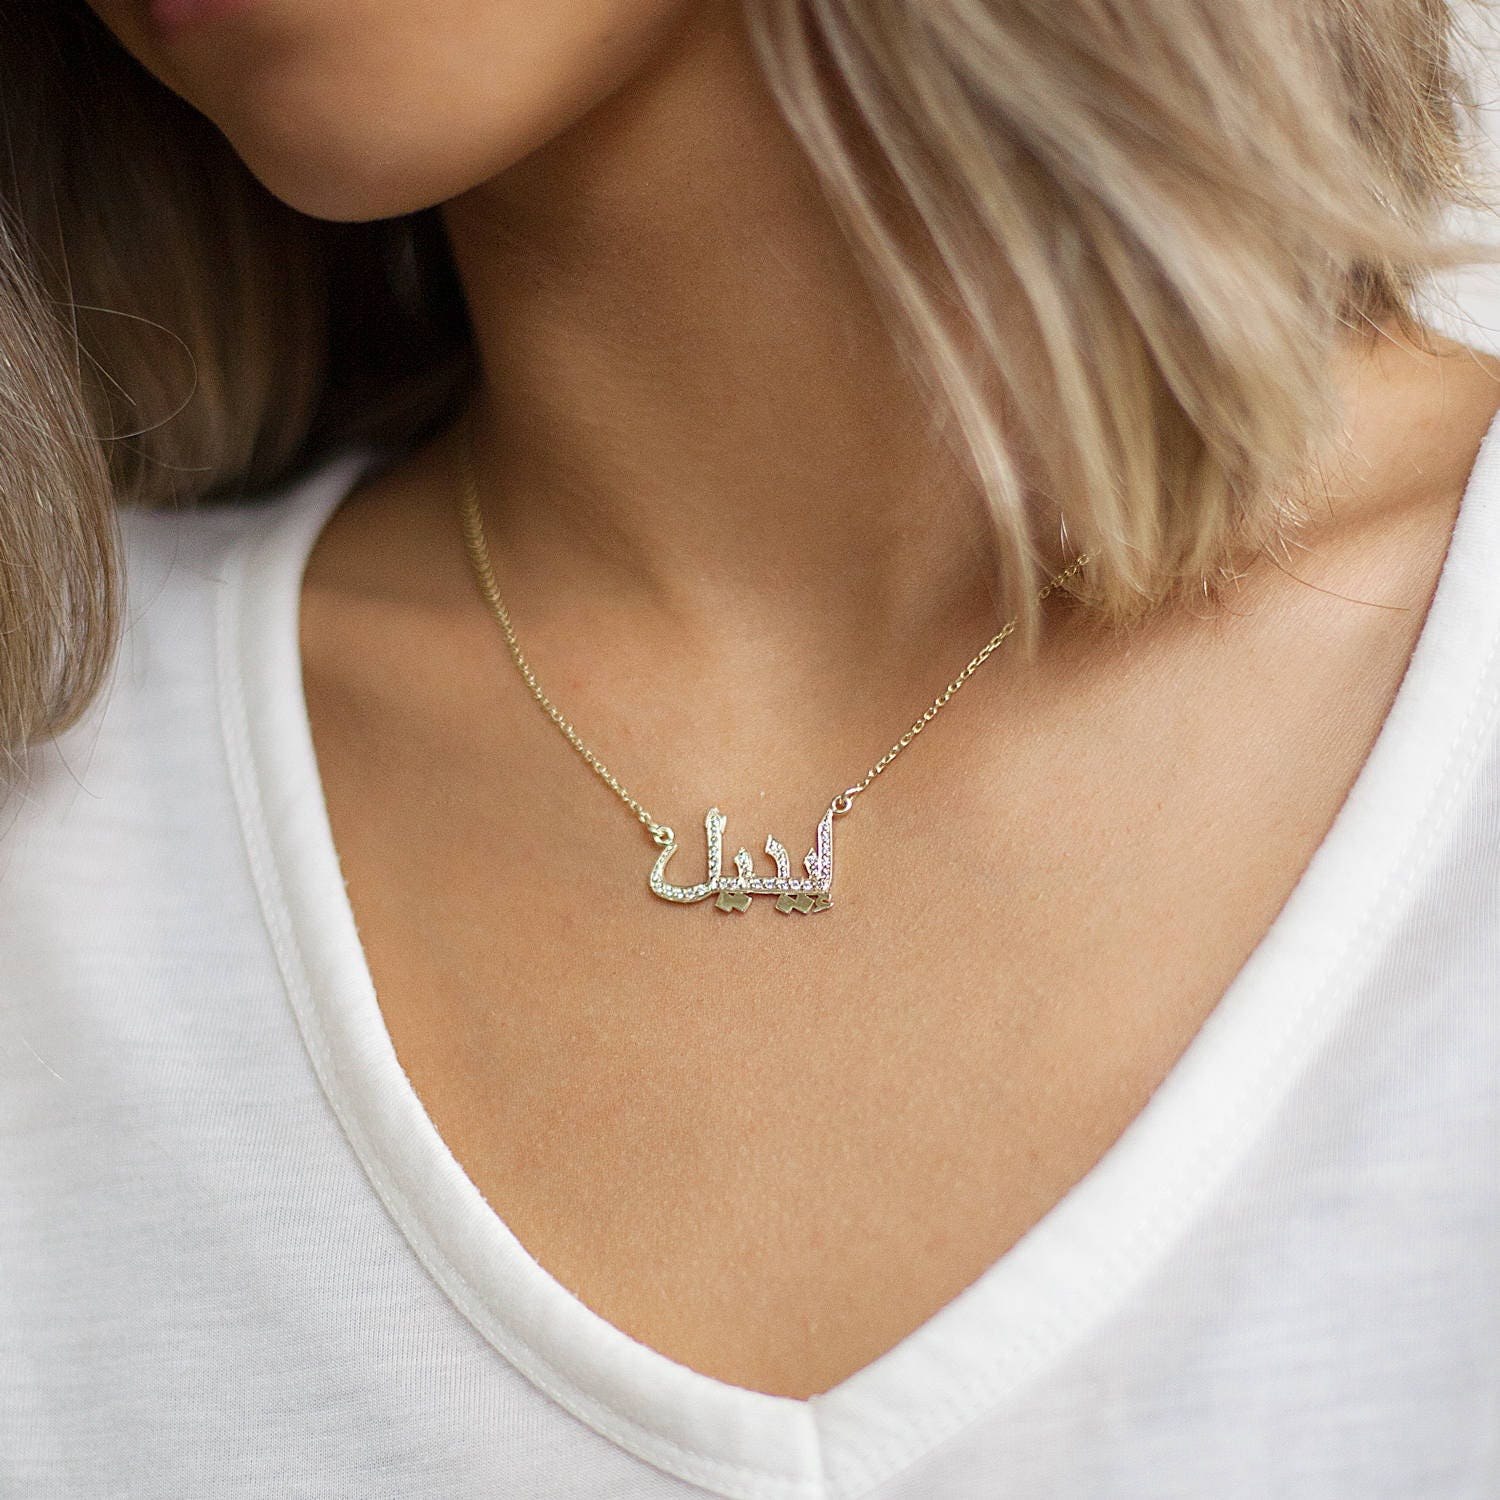 dad0363659af0 Arabic Name Necklace - Gold Arabic Name Necklace - Personalized Arabic  Necklace - Sterling Silver Name Necklace - Christmas Gift - Name